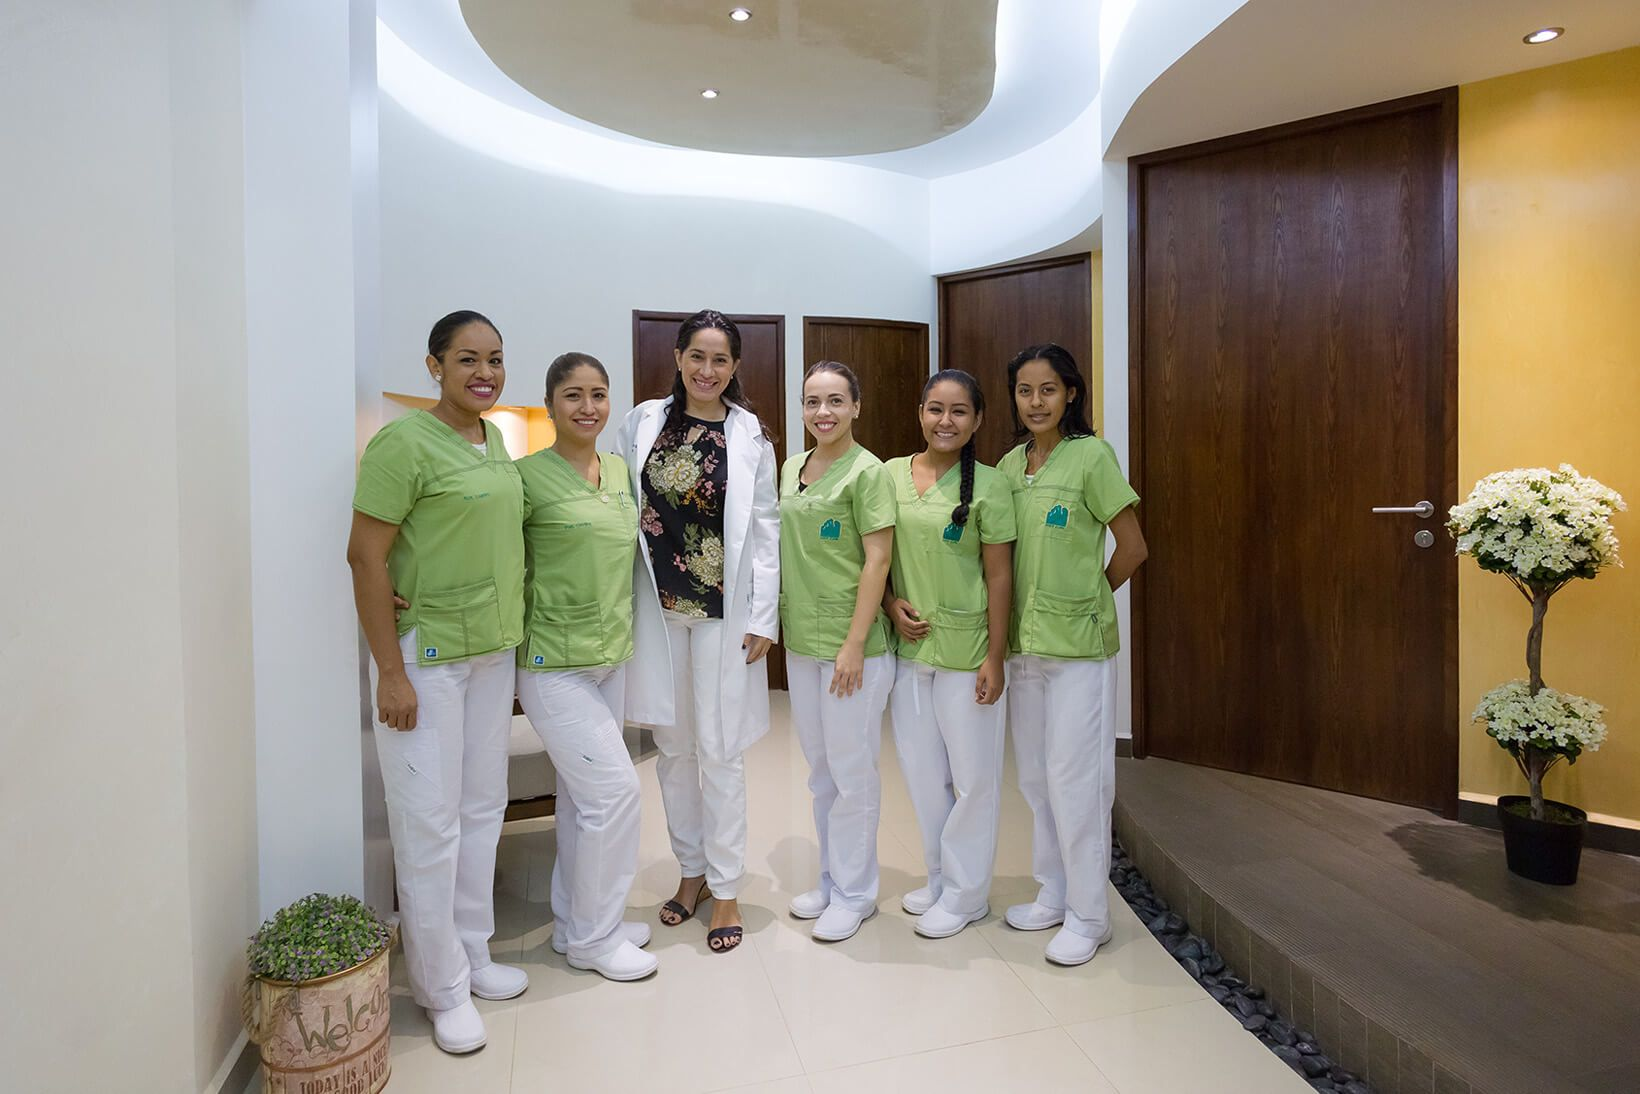 Foot Clinic by Paty Villanueva Professional Foot Care in Puerto Vallarta and Riviera Nayarit